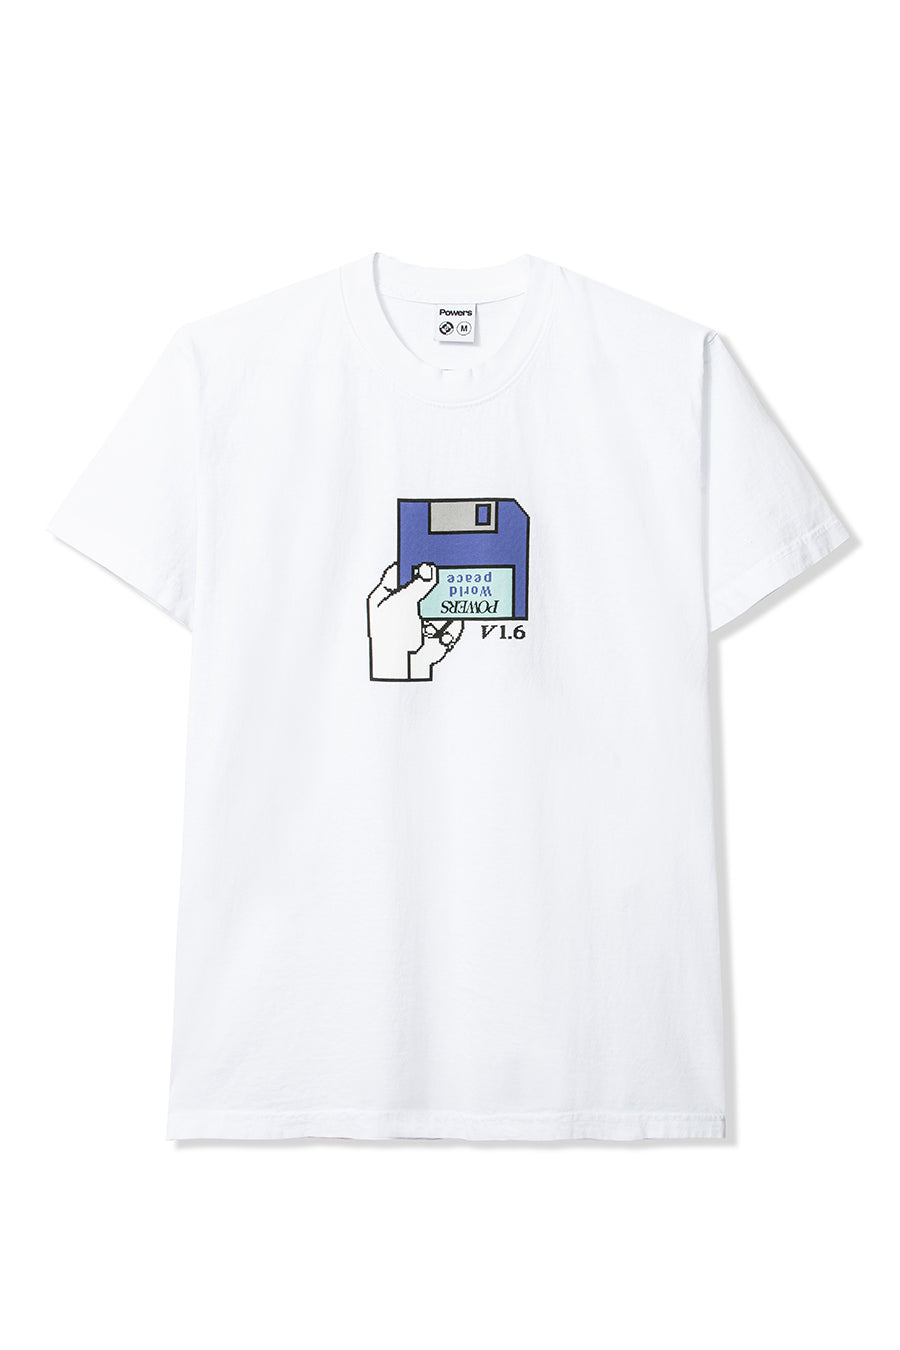 Powers Supply - White Floppy T-Shirt